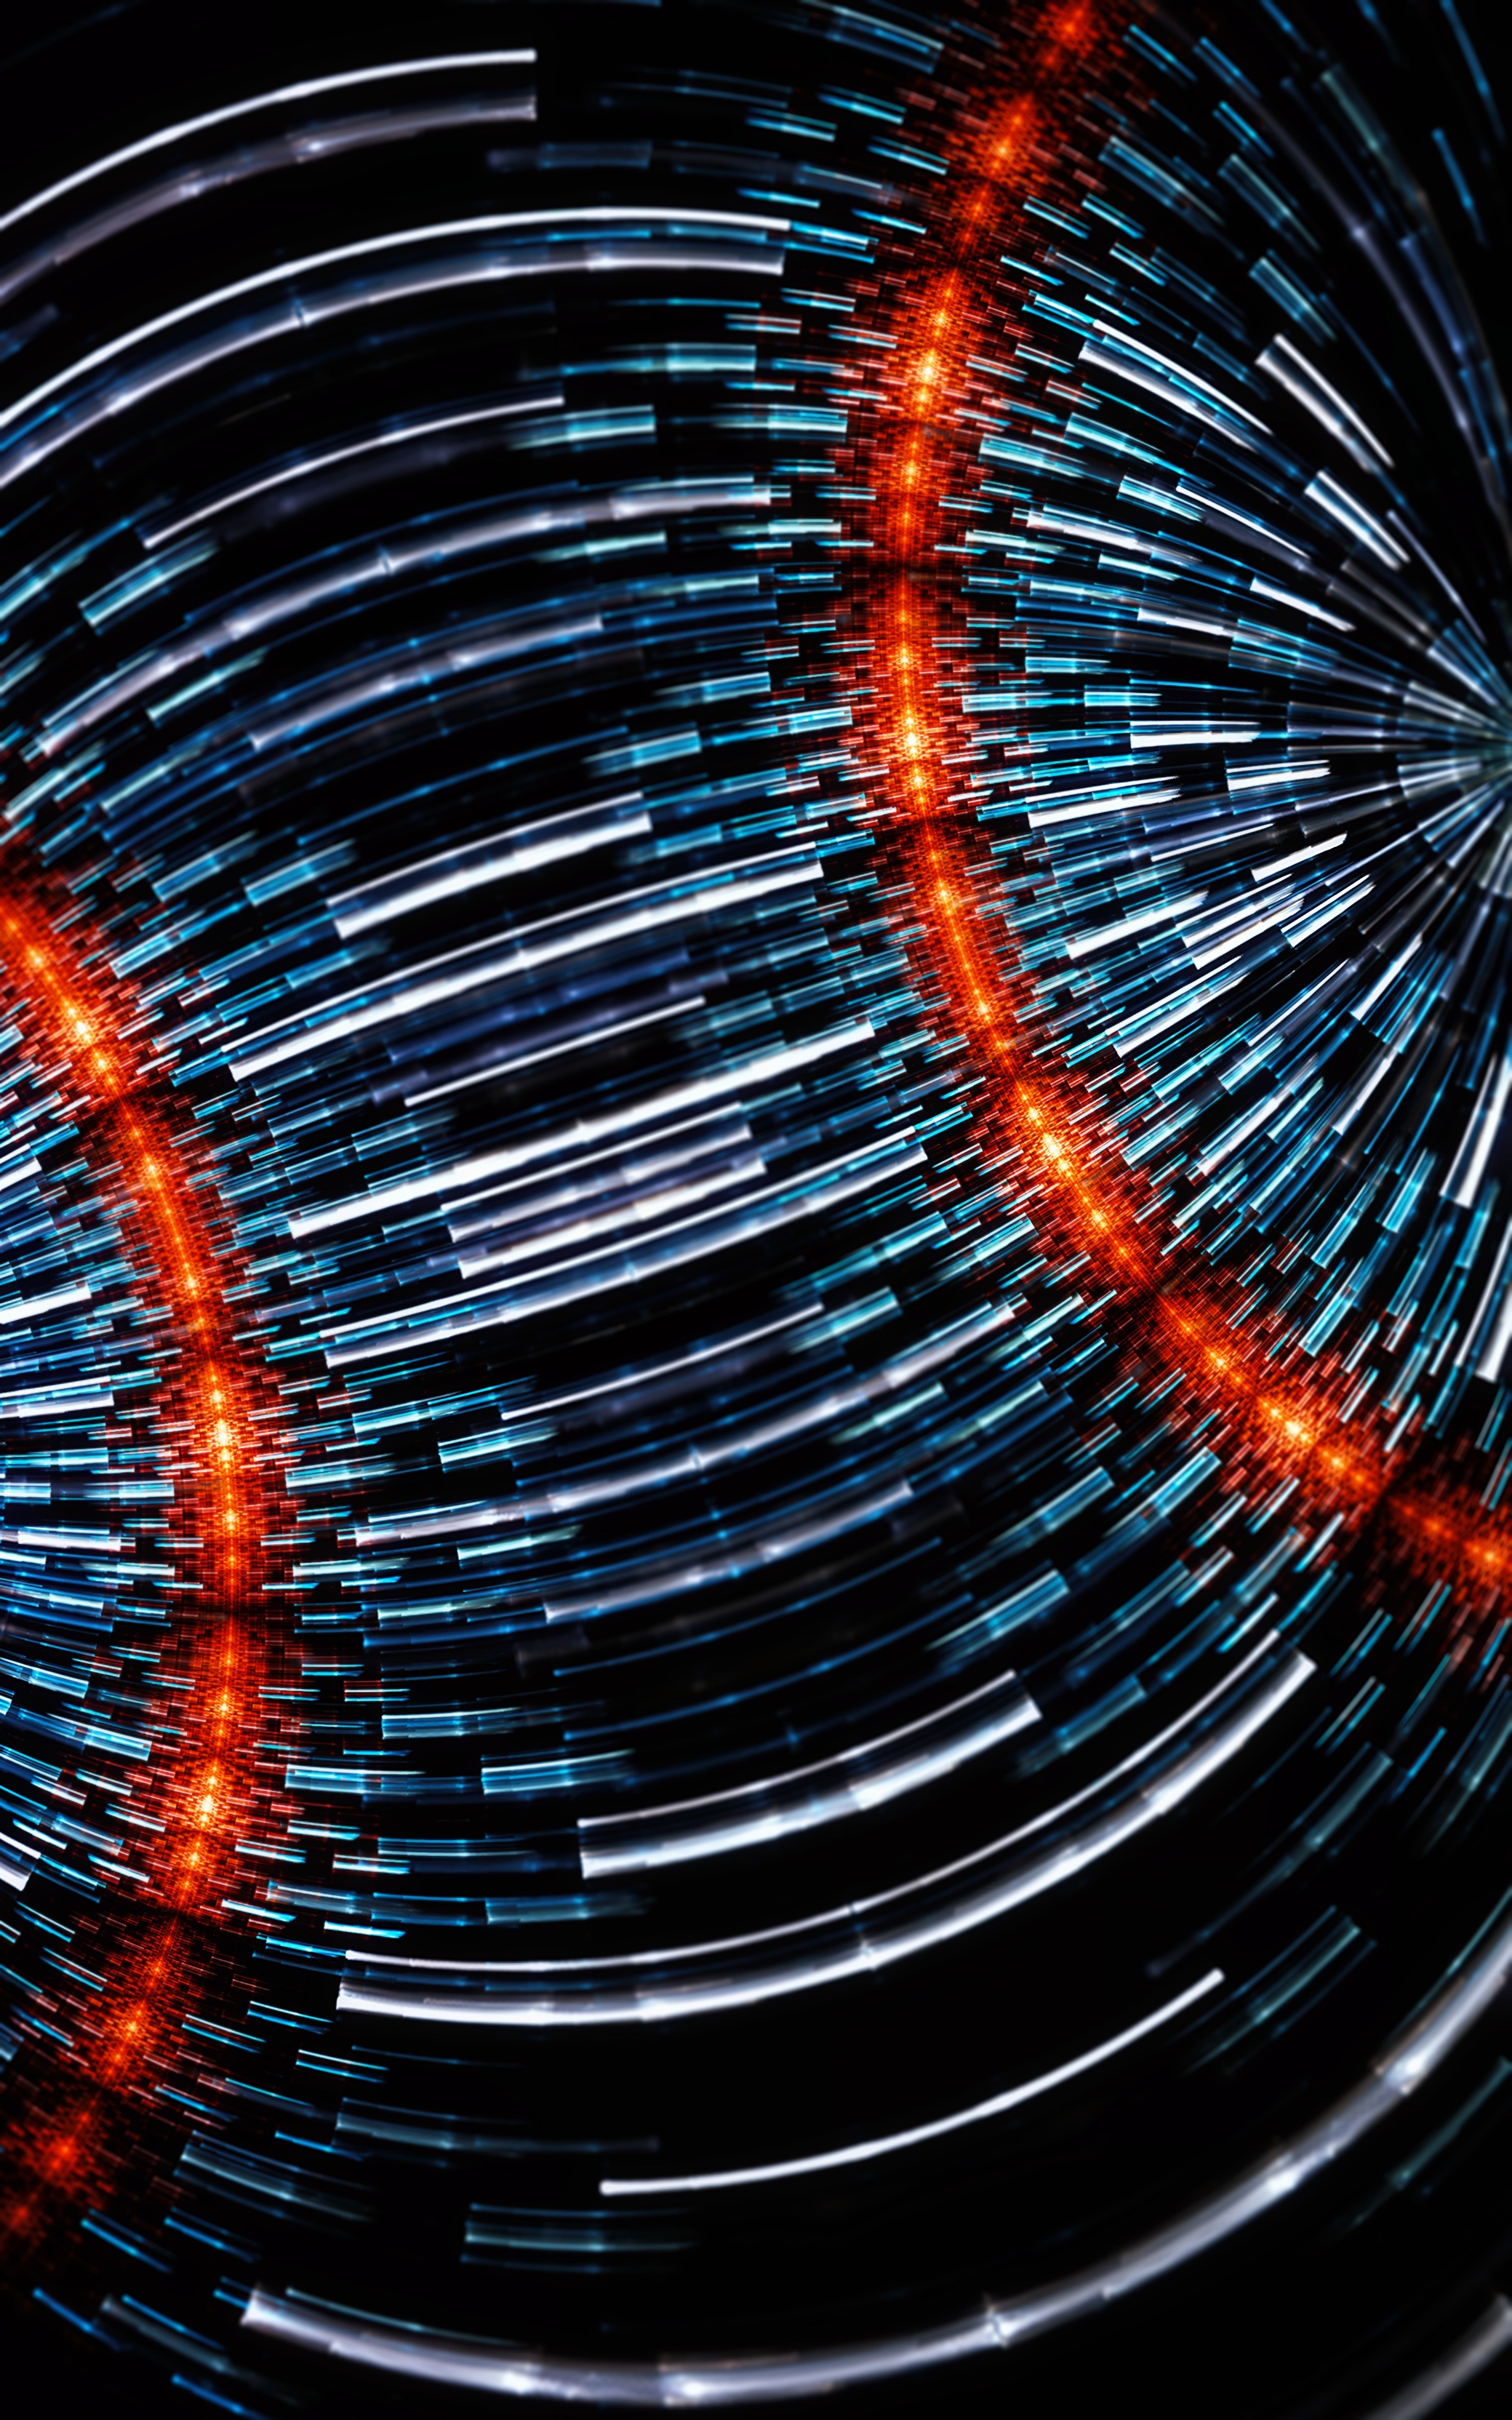 73105 free wallpaper 720x1560 for phone, download images Abstract, Lines, Form, Glow, Plexus, Connections, Connection 720x1560 for mobile